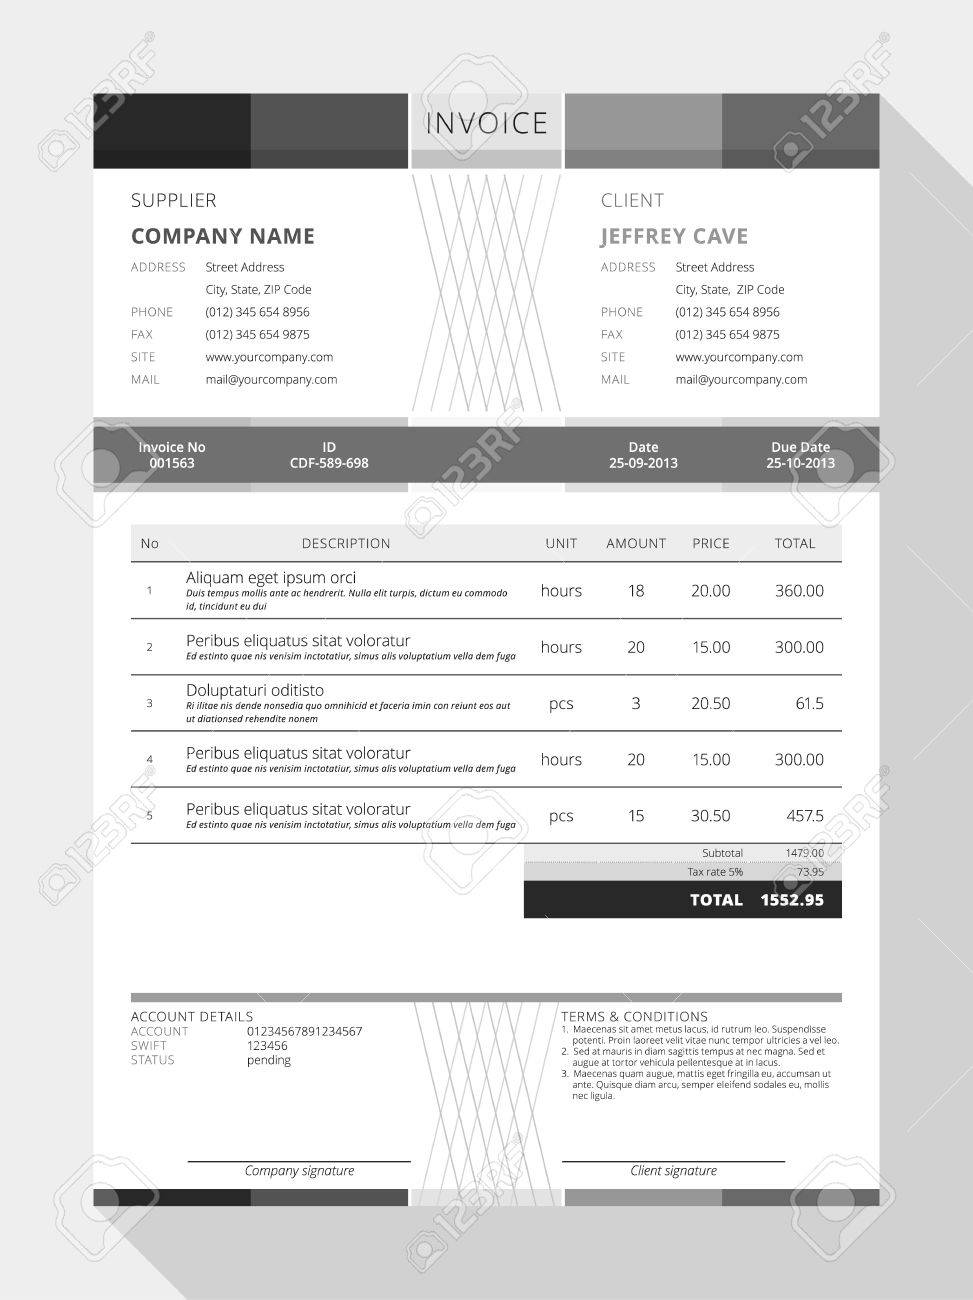 Coolmathgamesus  Mesmerizing Design An Invoice  Professional Graphic Design Invoice  With Licious Vector Customizable Invoice Form Template Design Vector   Design An Invoice With Endearing Photography Invoice Sample Also Gmc Acadia Invoice Price In Addition Business Invoice Software And Fedex Pay Invoice Online As Well As Generic Invoice Pdf Additionally Estimate Invoice From Happytomco With Coolmathgamesus  Licious Design An Invoice  Professional Graphic Design Invoice  With Endearing Vector Customizable Invoice Form Template Design Vector   Design An Invoice And Mesmerizing Photography Invoice Sample Also Gmc Acadia Invoice Price In Addition Business Invoice Software From Happytomco